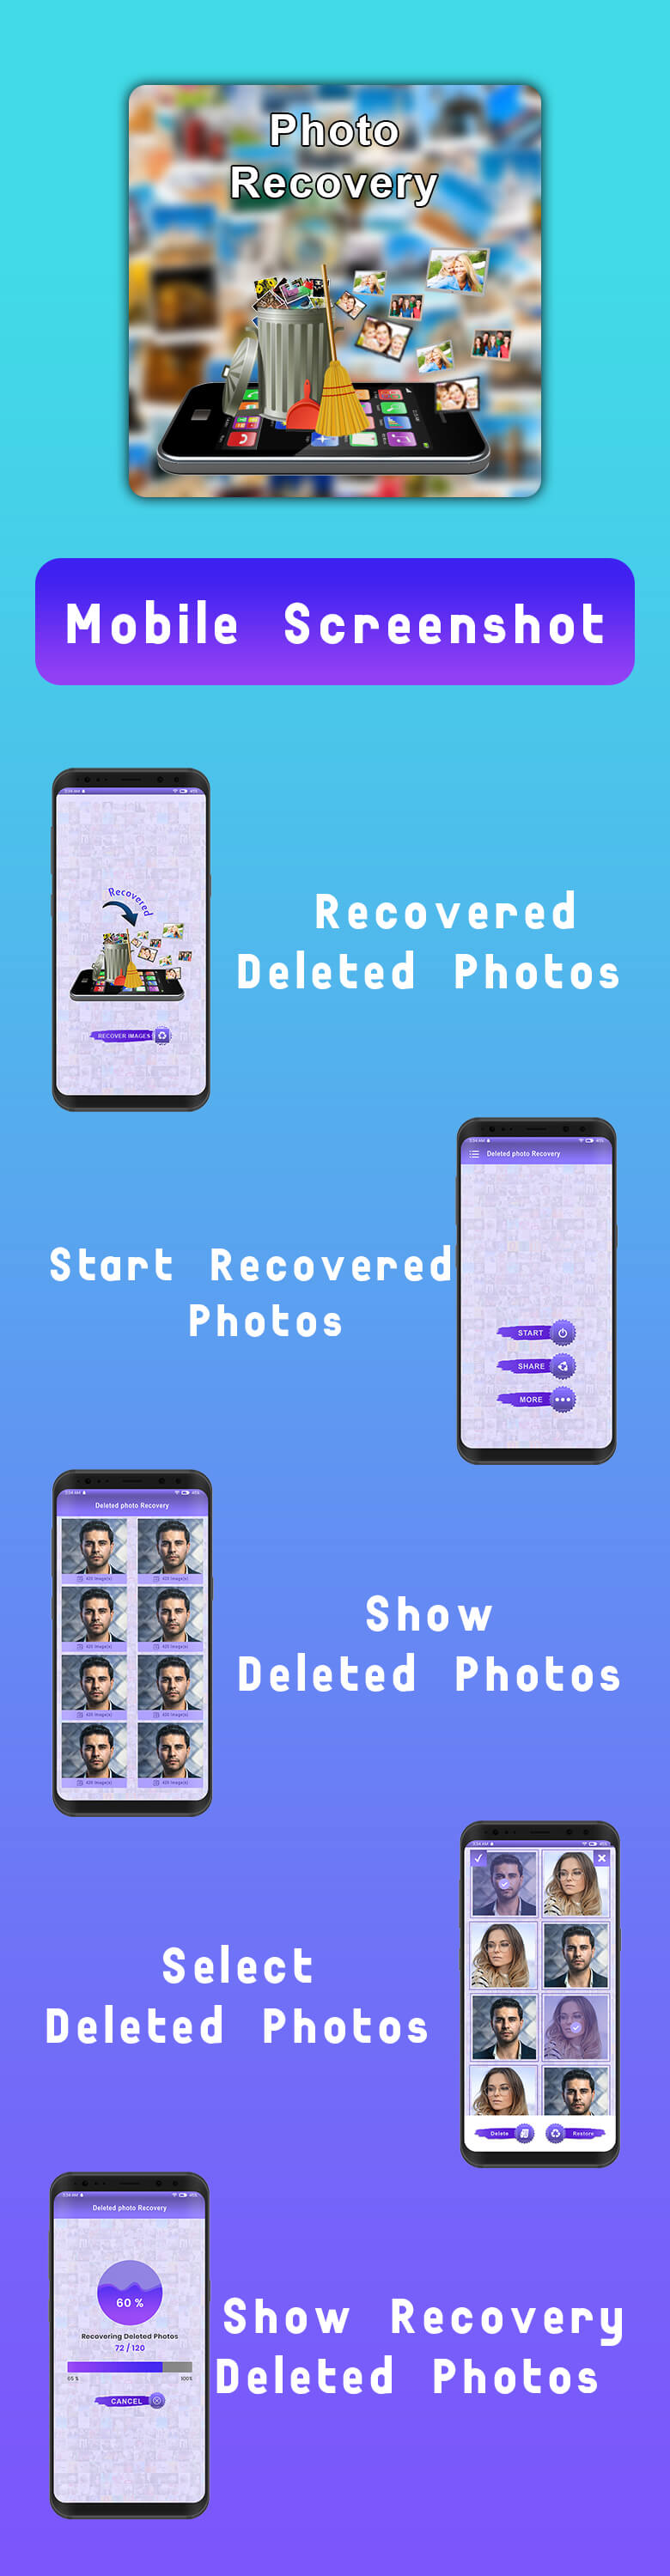 Delete Photo Recovery With Facebook + Admob + Startup Ad Integration - 1